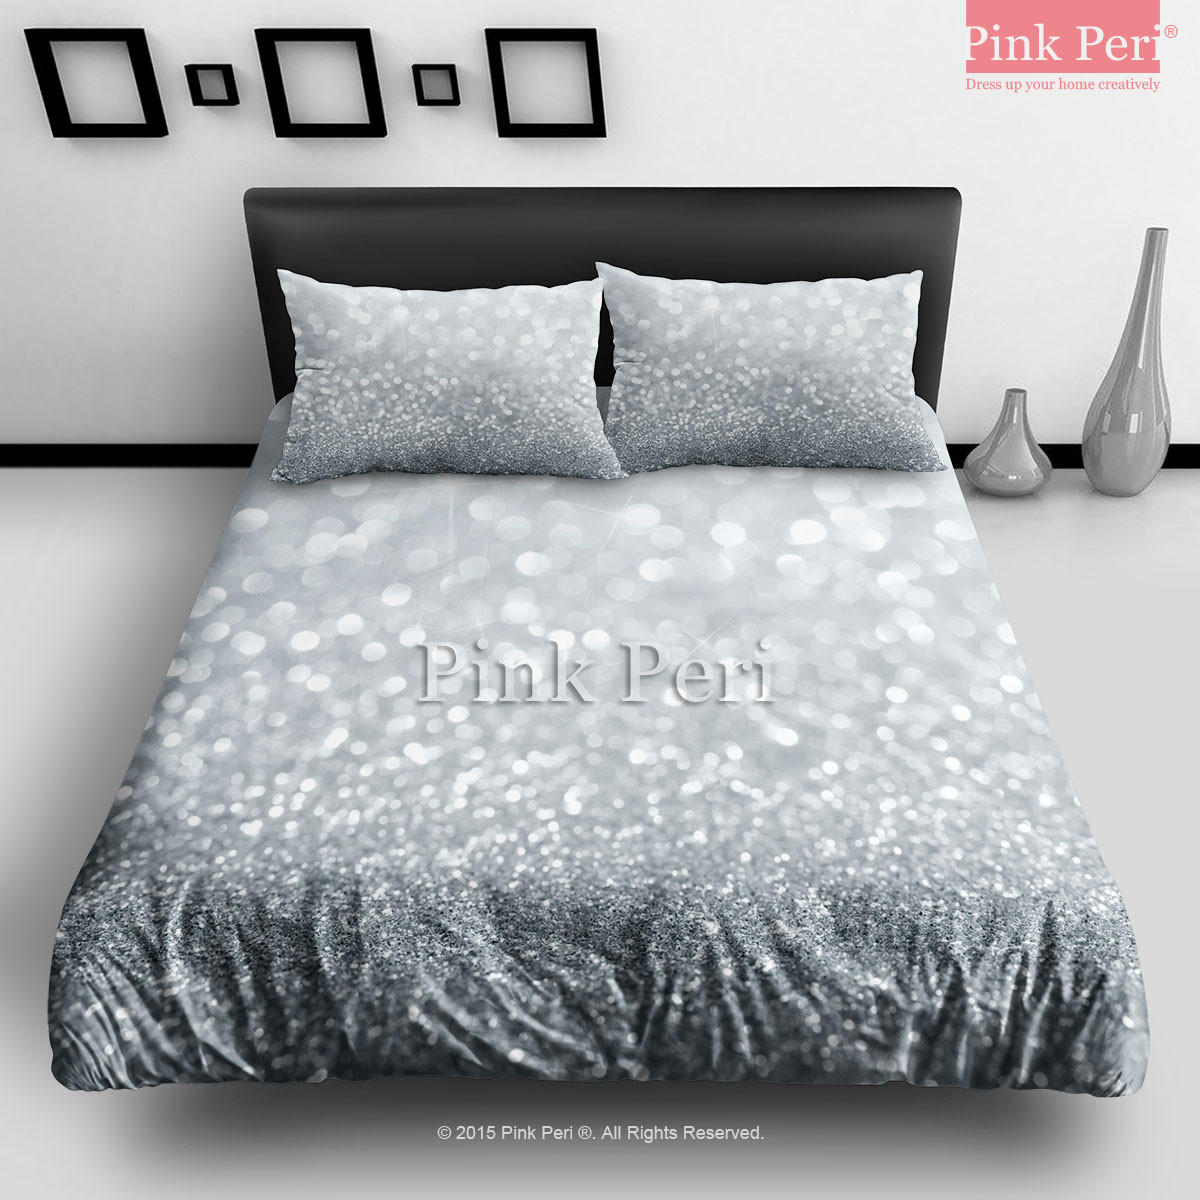 Bedroom Bed Photo Glitter Bedroom Accessories Pink Accent Wall Bedroom Bedroom Bench Decor: Silver Grey Sparkle Glitter Bedding Sets From Pink Peri